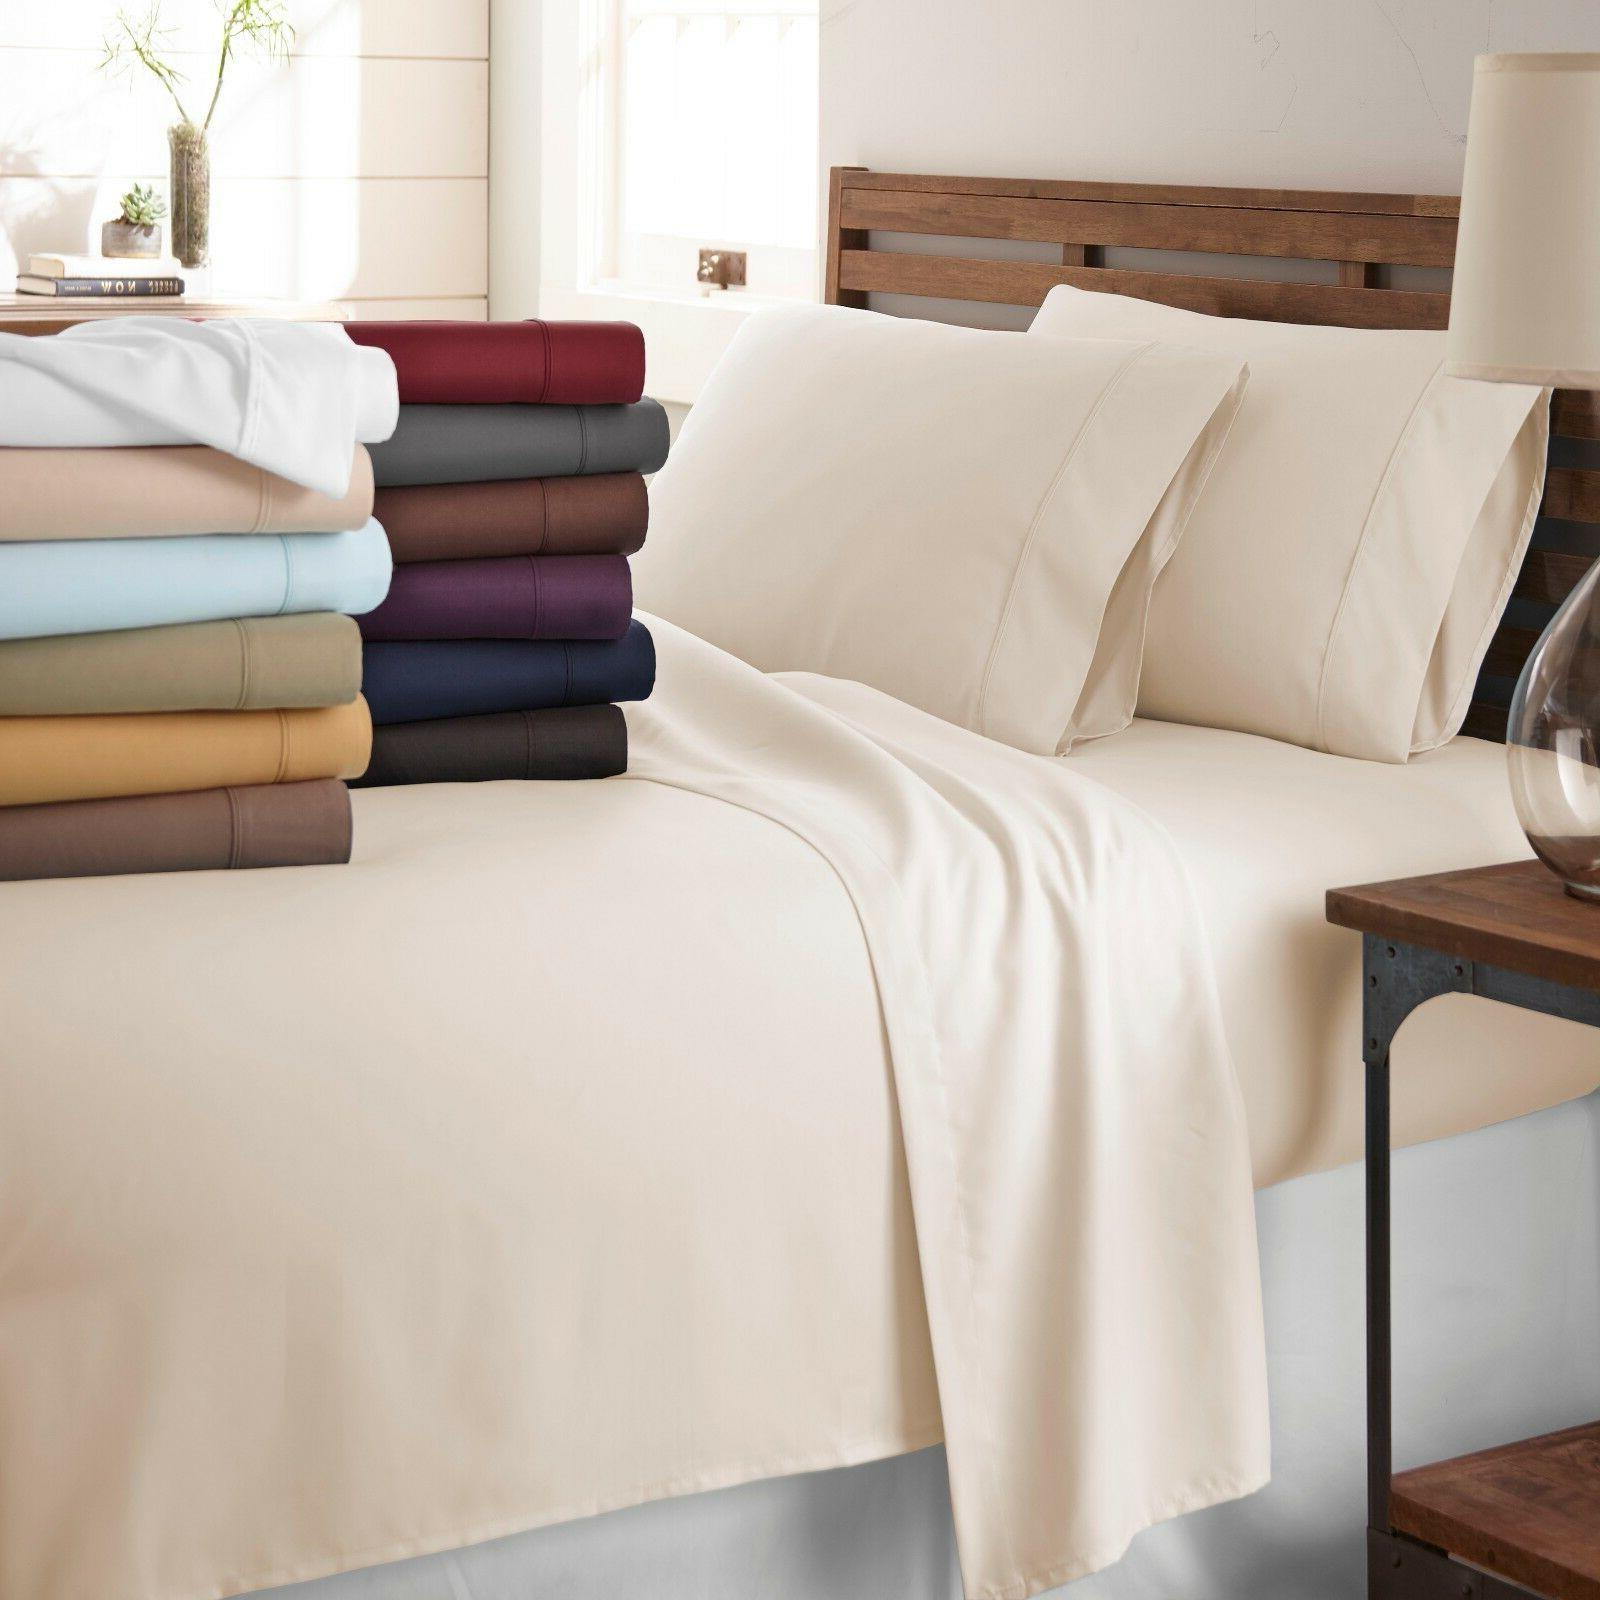 1800 series hotel quality bed sheets hypoallergenic